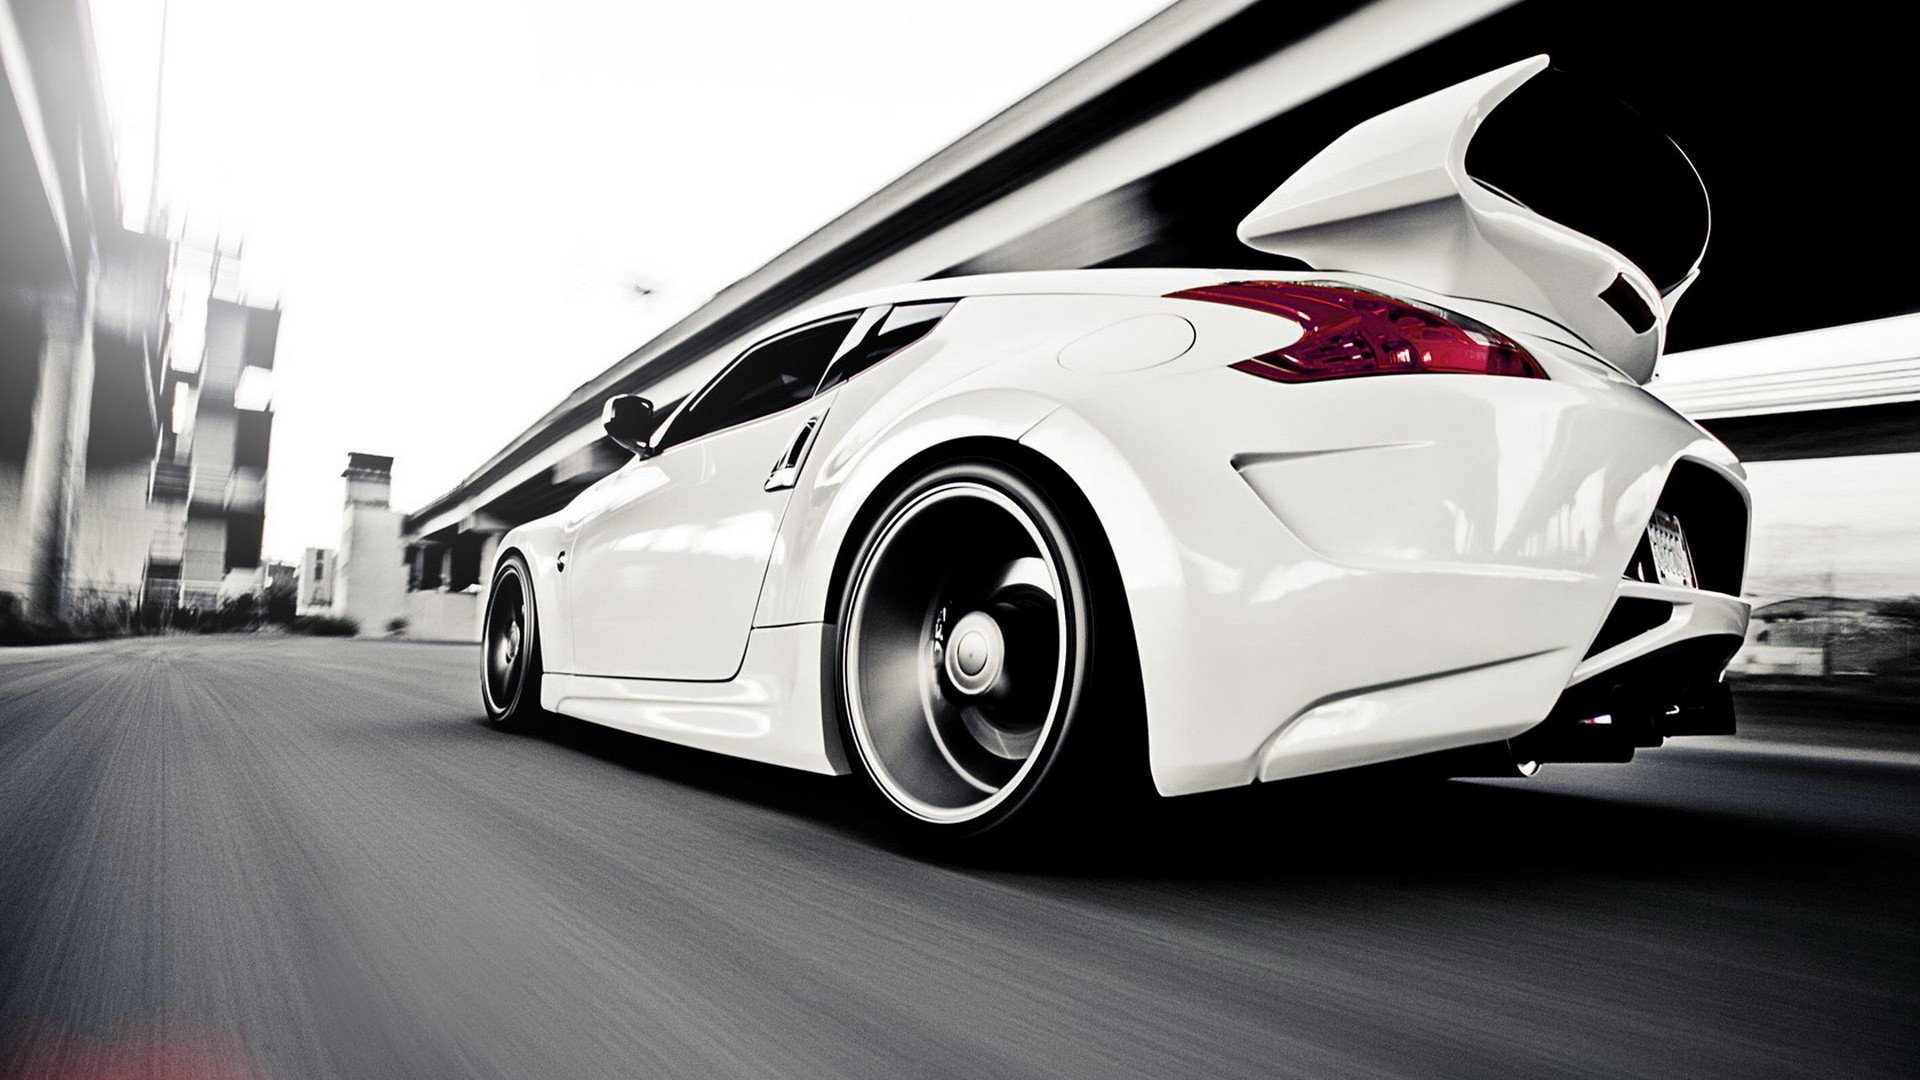 2013 Amazing Car Wallpaper 1080p Free Hd Resolutions My Site